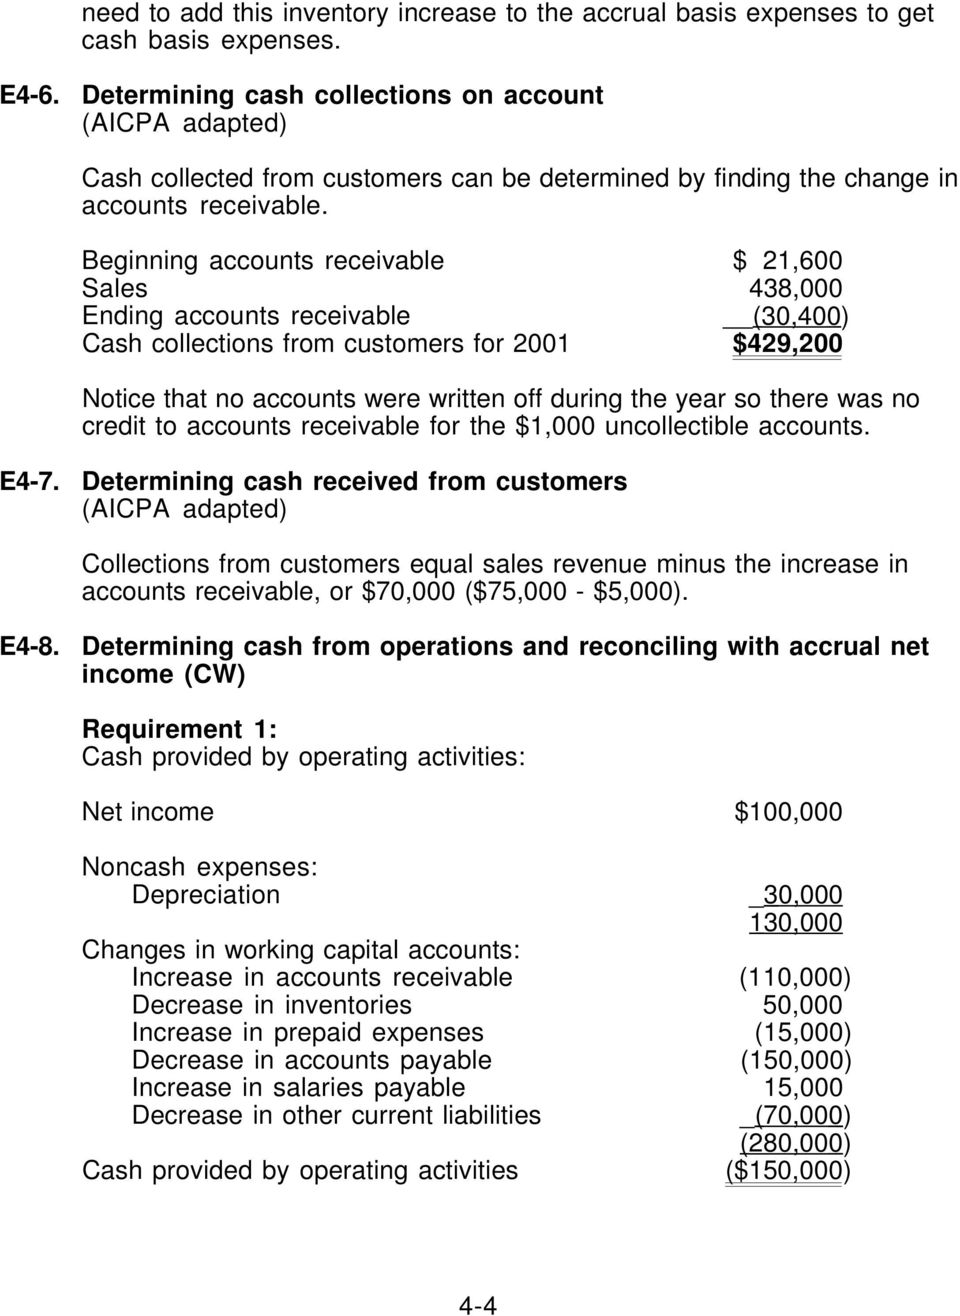 Beginning accounts receivable $ 21,600 Sales 438,000 Ending accounts receivable (30,400) Cash collections from customers for 2001 $429,200 Notice that no accounts were written off during the year so